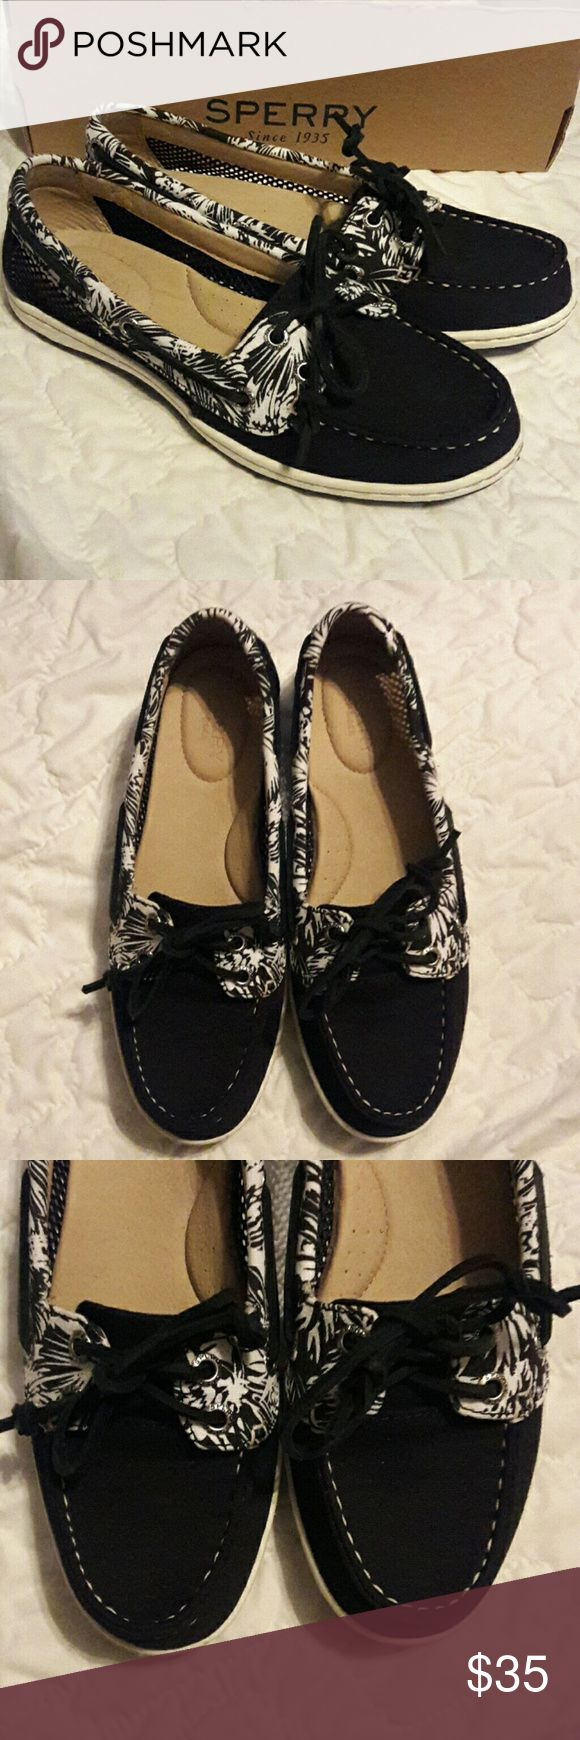 Brand New Sperrys NWOT! Brand new, never worn Sperrys! Firefish Tropicali Black & White. Beautiful black canvas, black and white tropical pattern with unique open netting style on sides. Cushioned insoles. Beautiful shoes! 💕 Sperry Shoes